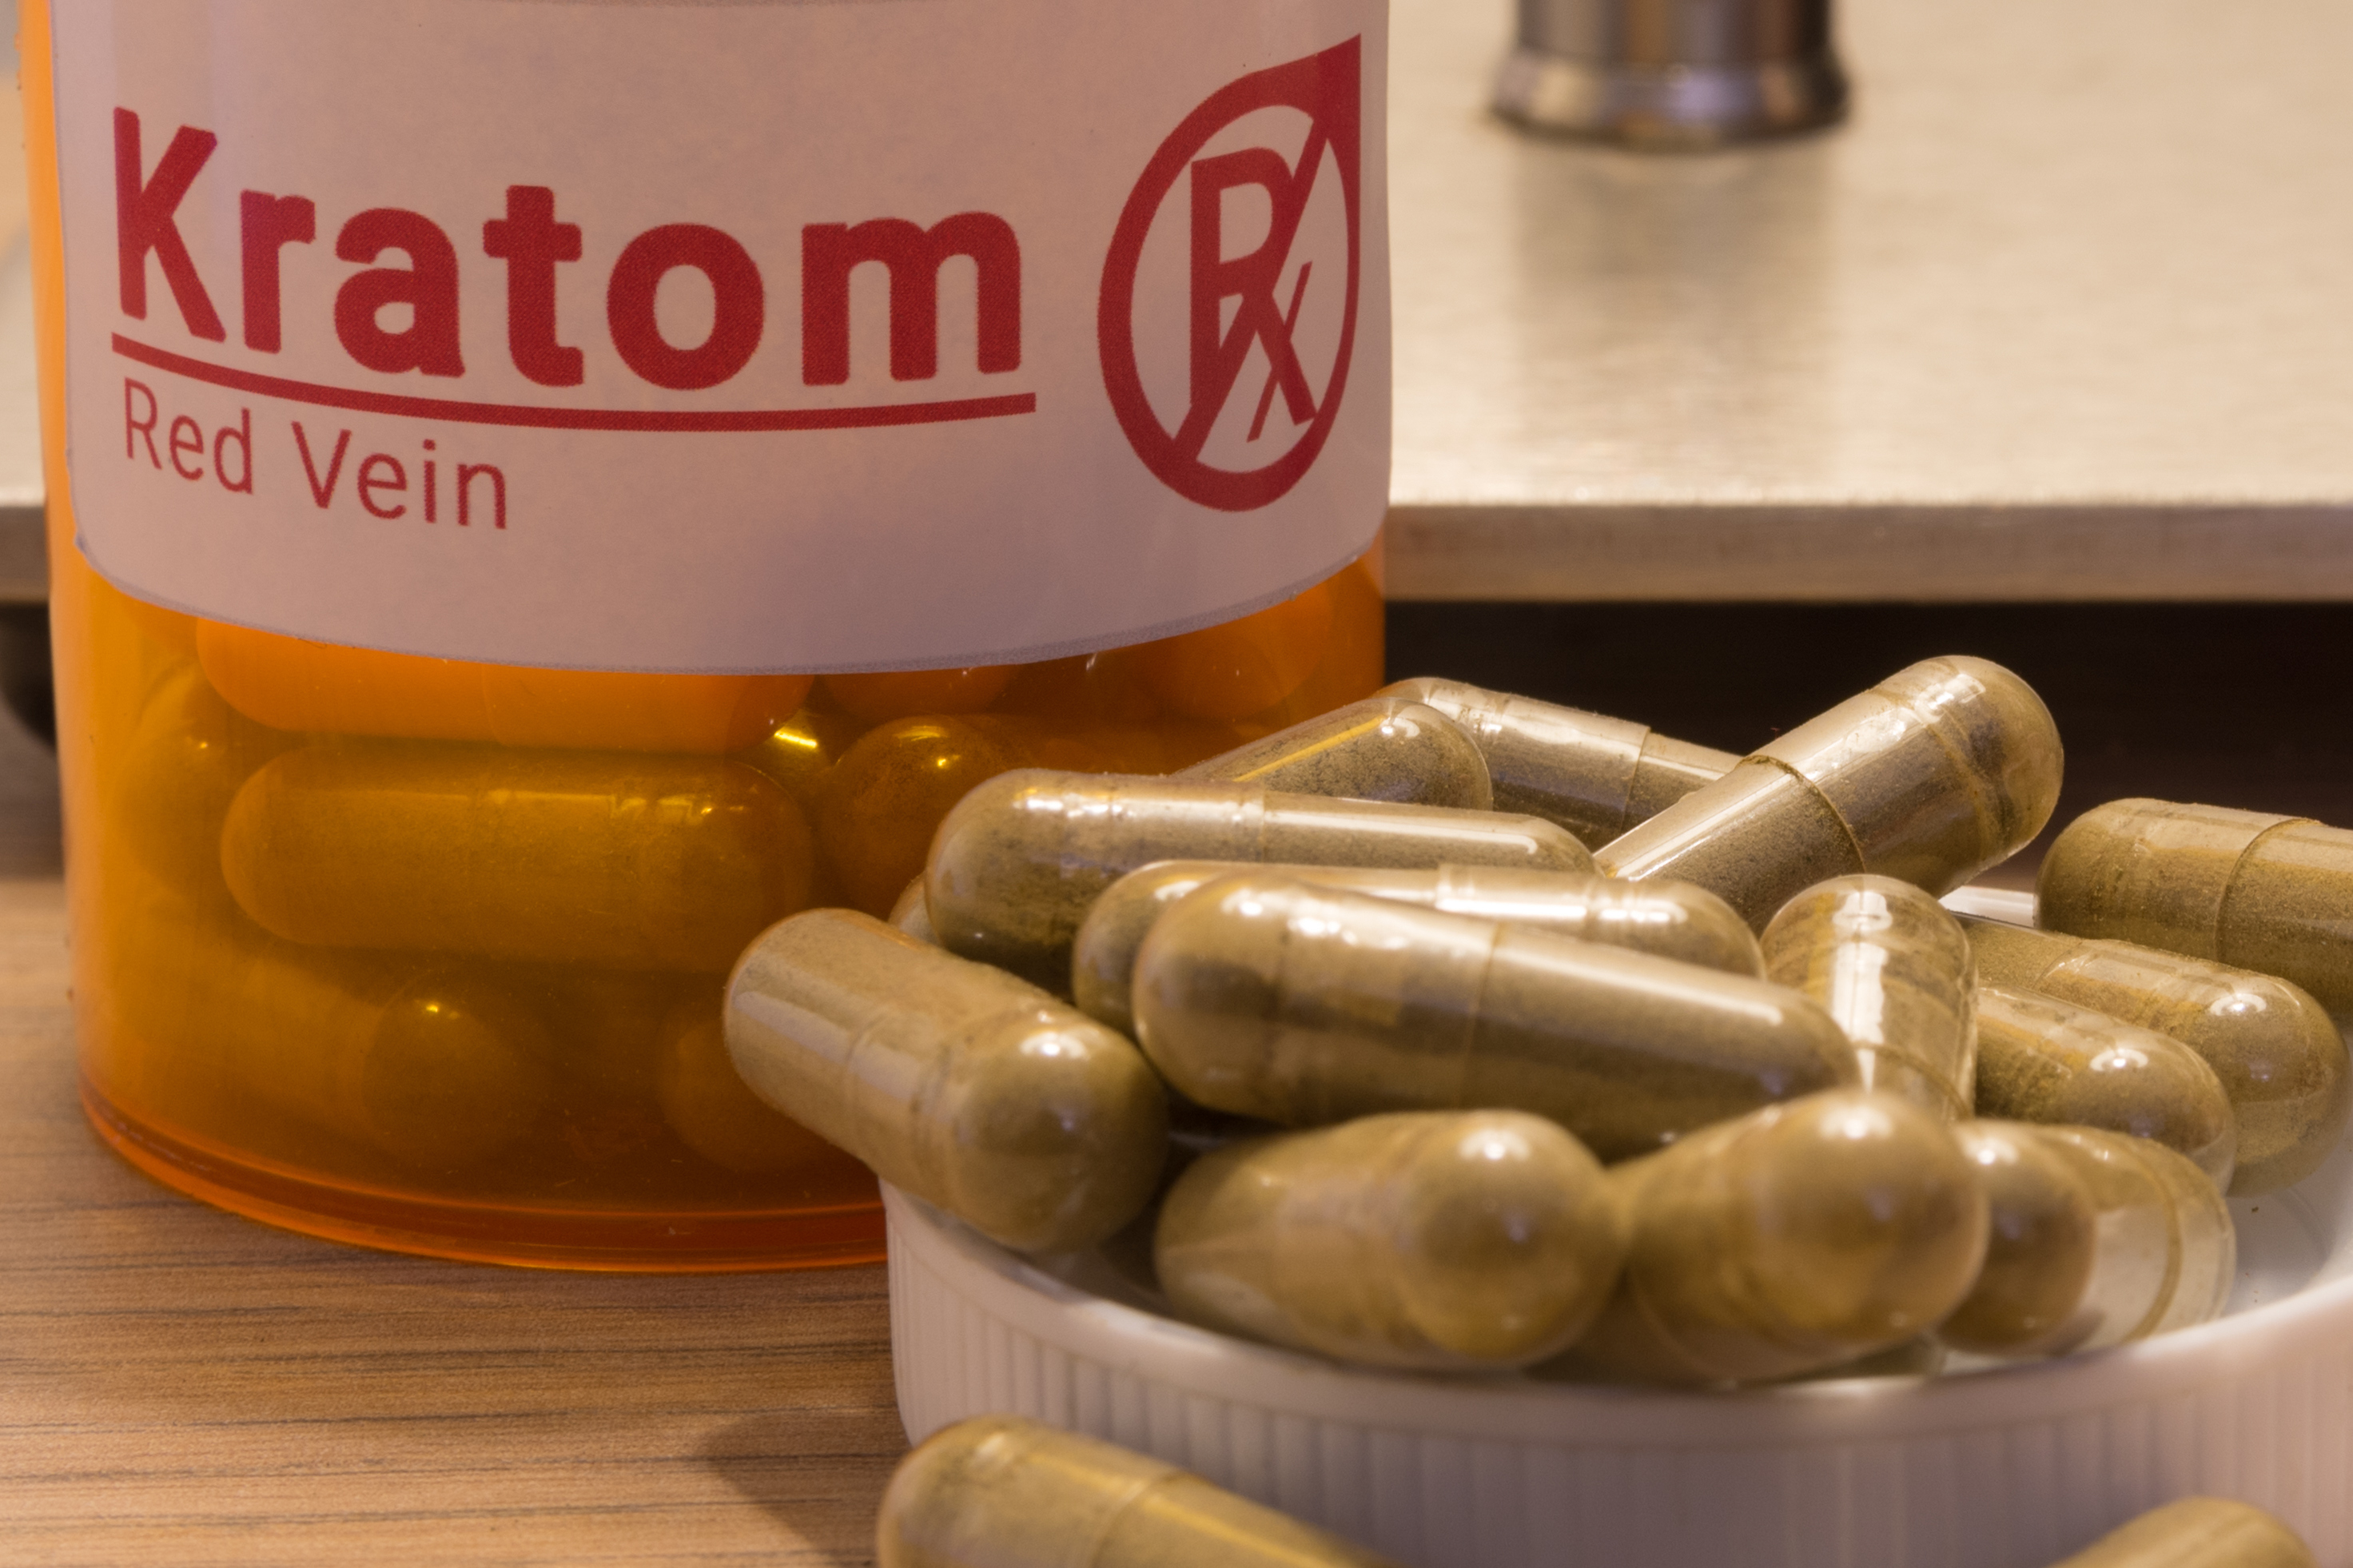 Image of actual kratom pills with a faux prescription logo. (Getty Images)